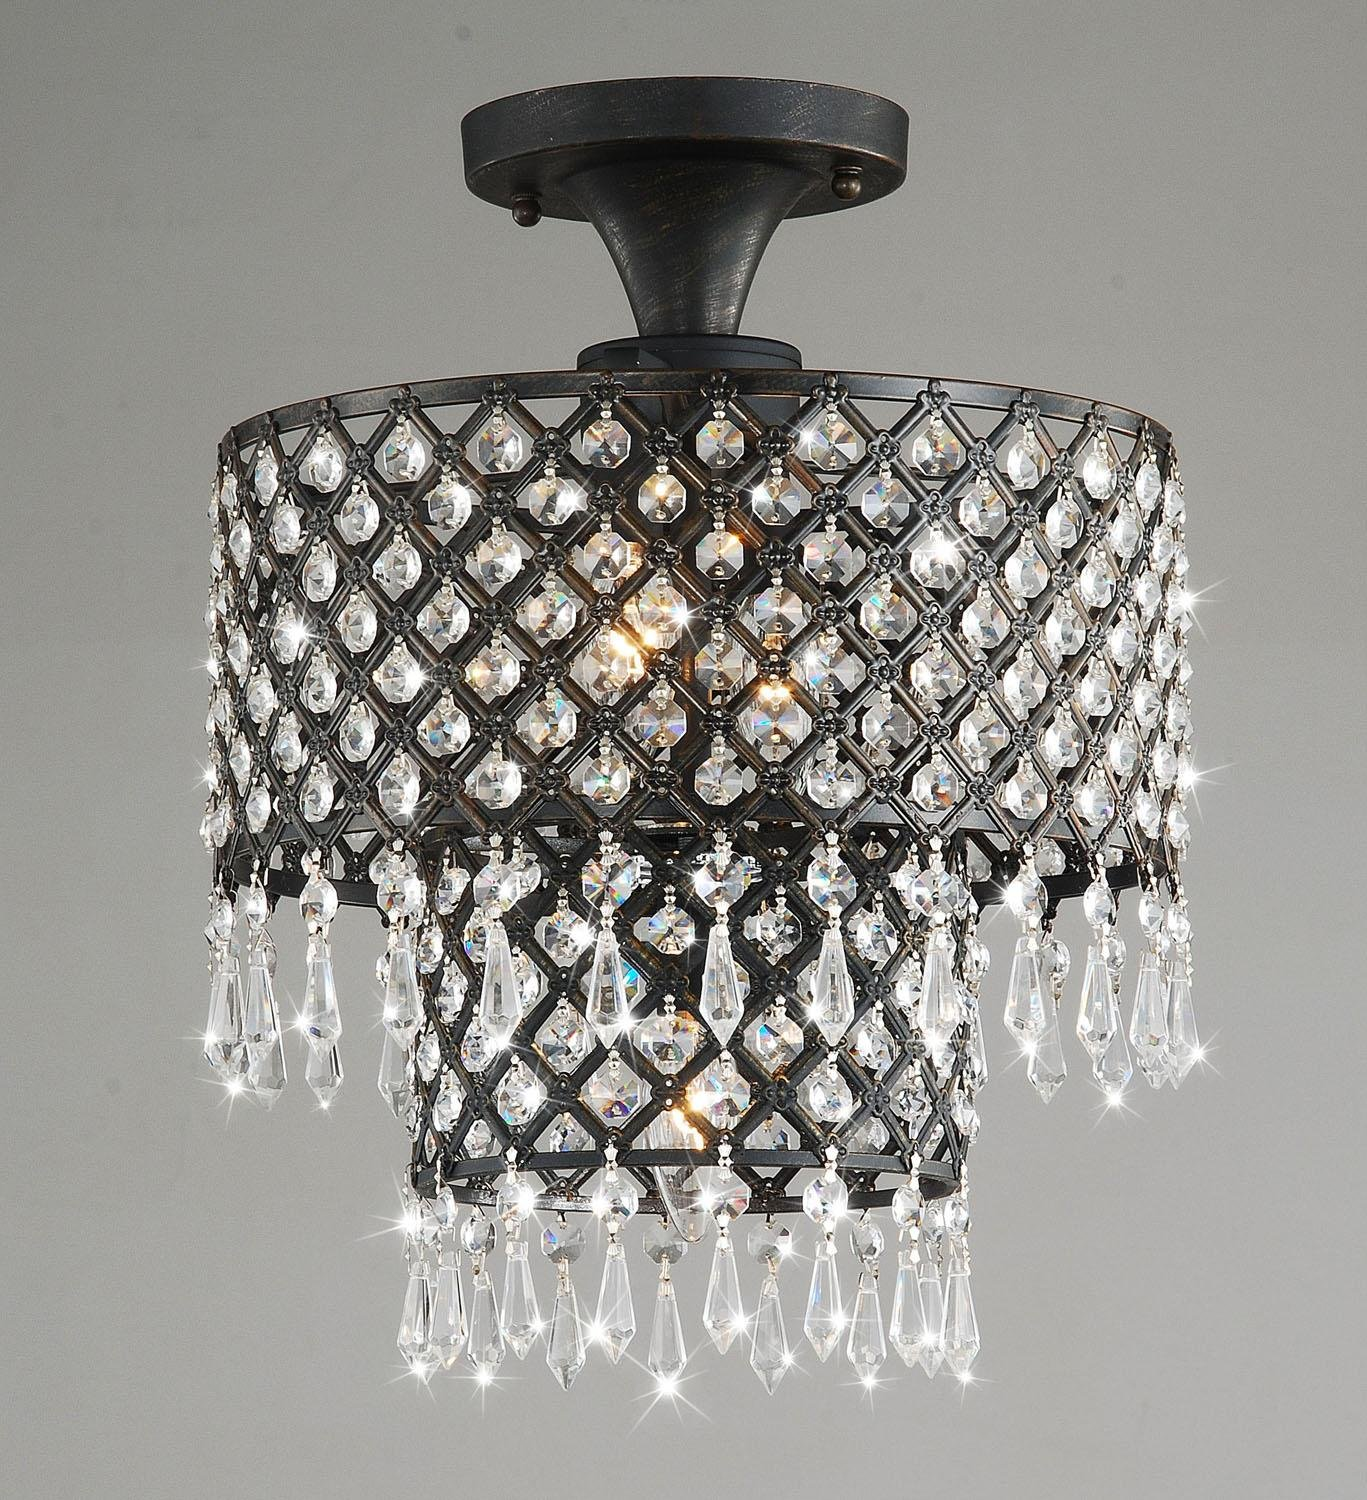 Jojospring melinda 3 light antique black crystal flush mount jojospring melinda 3 light antique black crystal flush mount chandelier amazon arubaitofo Images